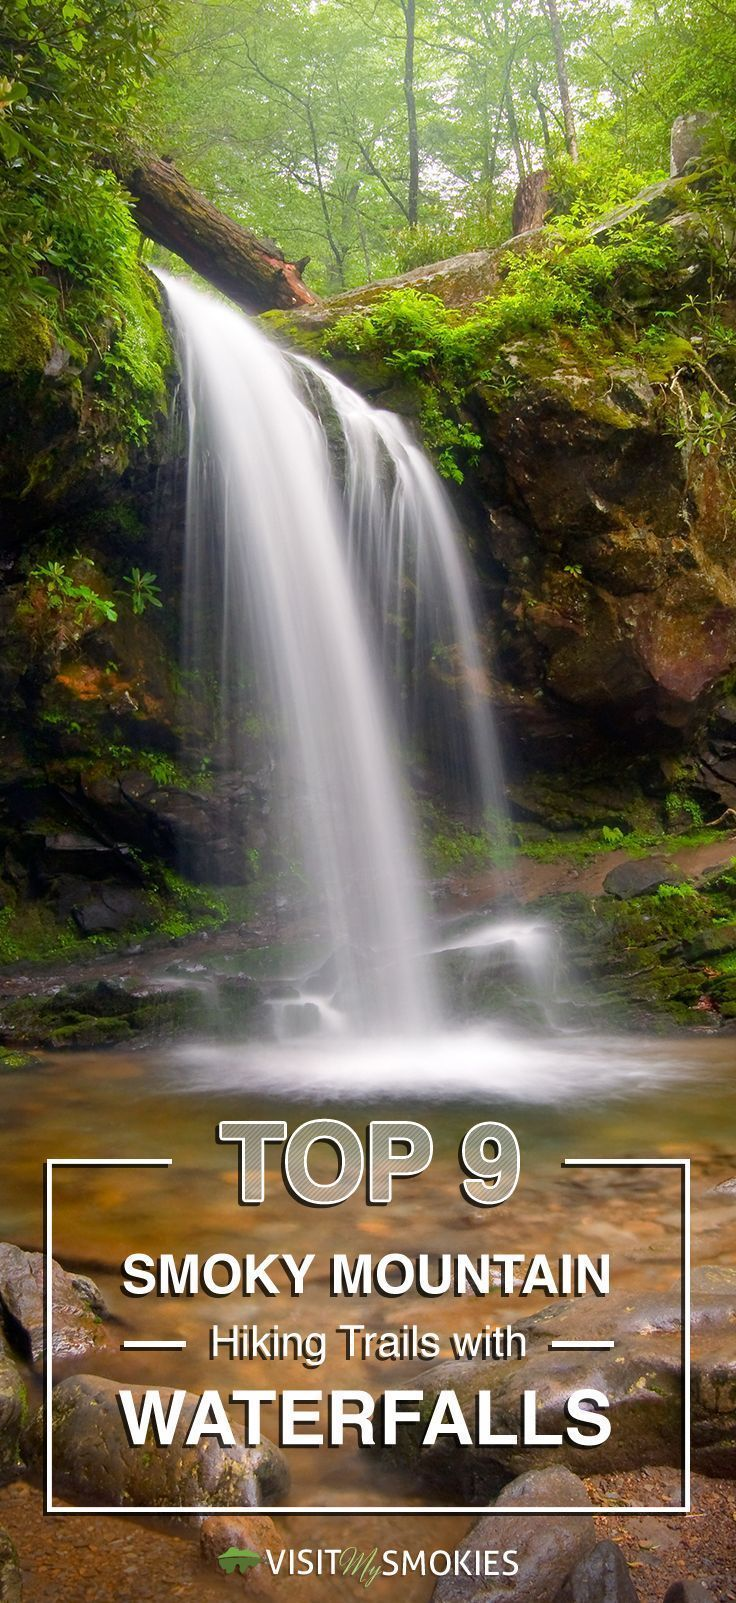 Top 9 Smoky Mountain Hiking Trails with Waterfalls. You'll want to include these waterfall hikes in your Great Smoky Mountains National Park trip.